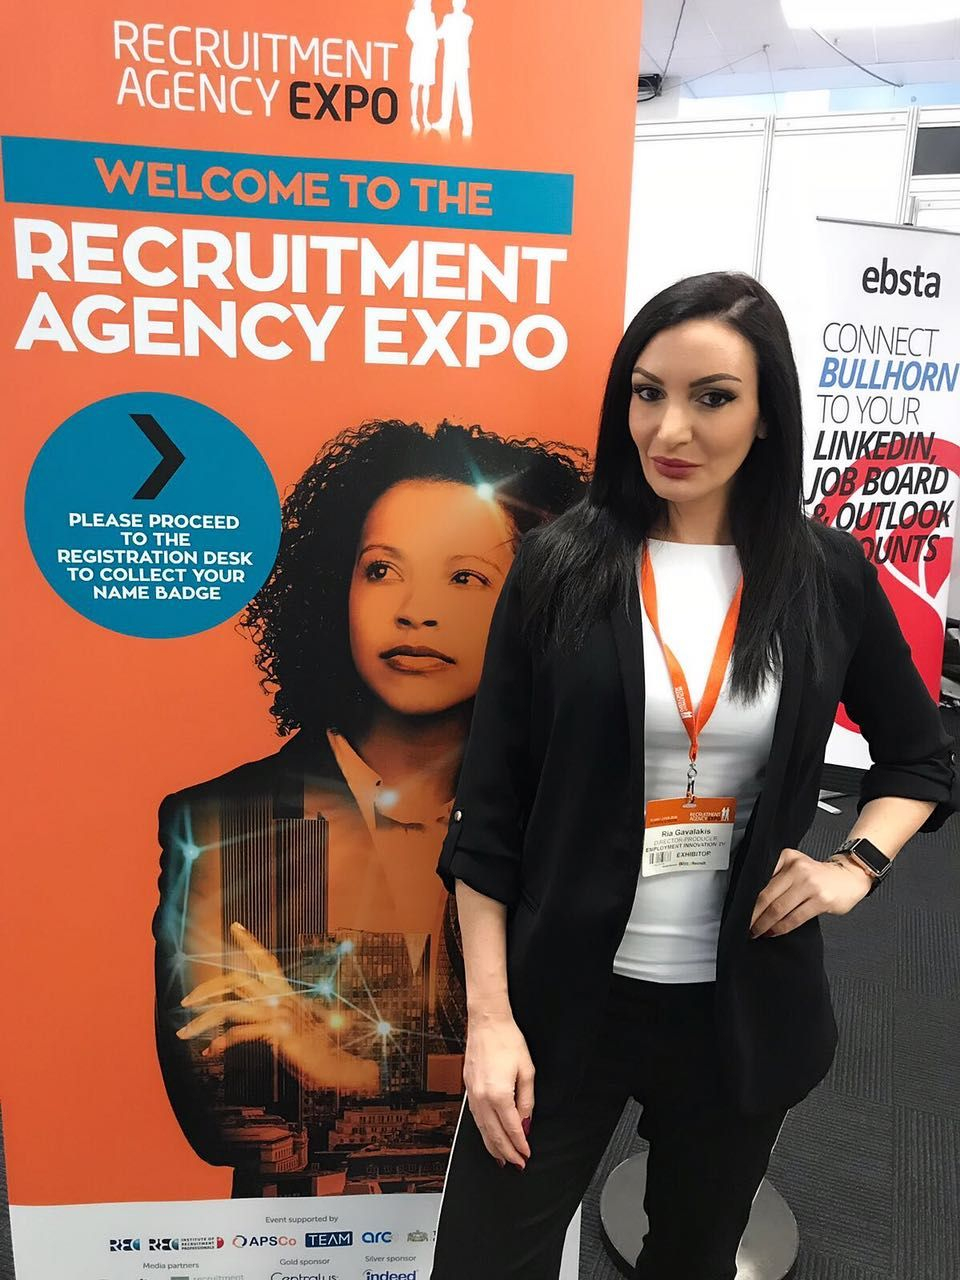 Day 2 at the Recruitment Agency Expo 2018! Employment Innovation